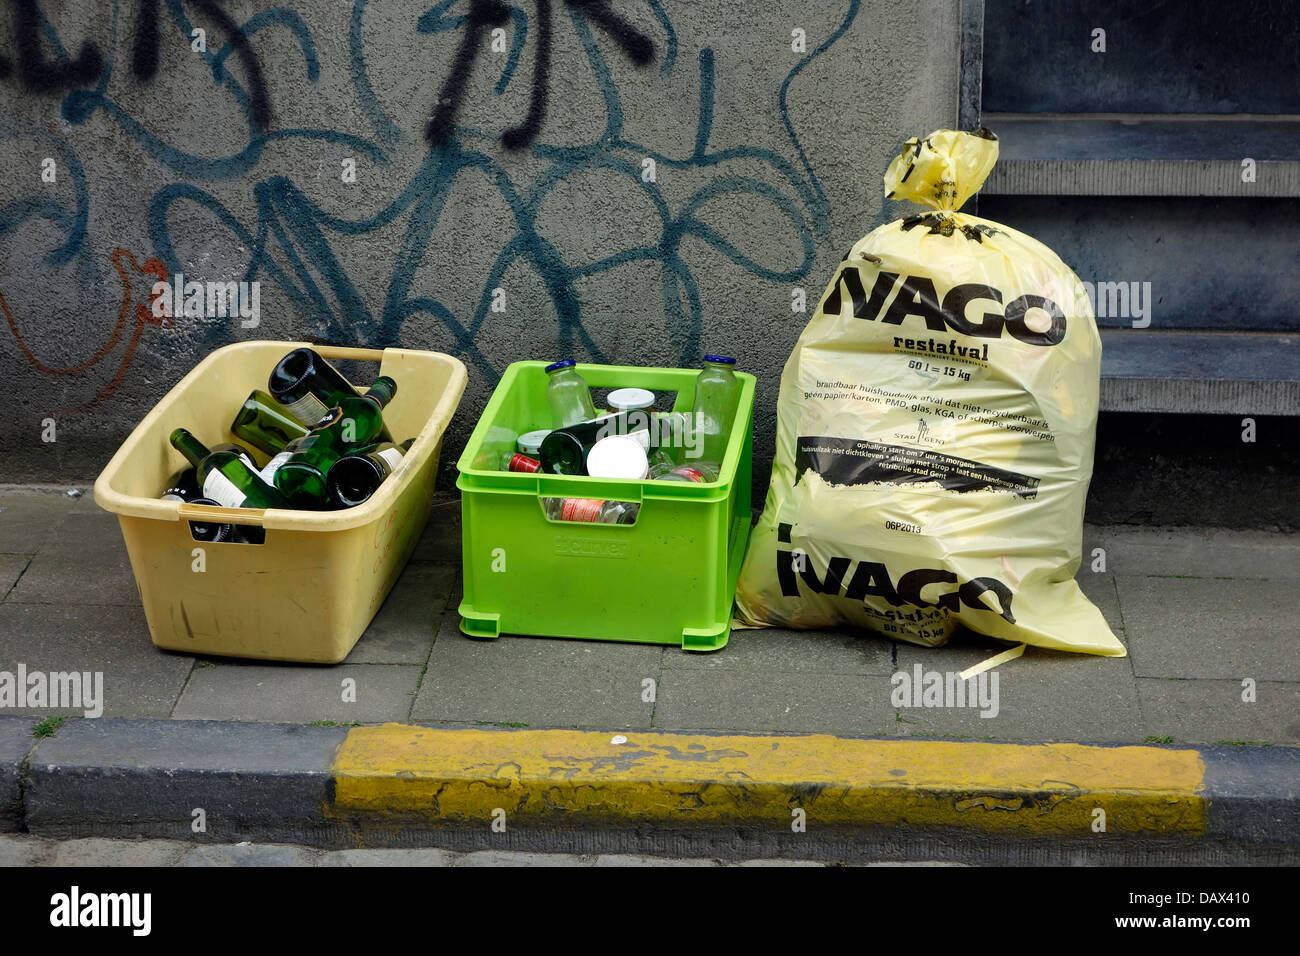 Plastic containers with glass bottles and garbage bag with household waste in front of house in city street - Stock Image